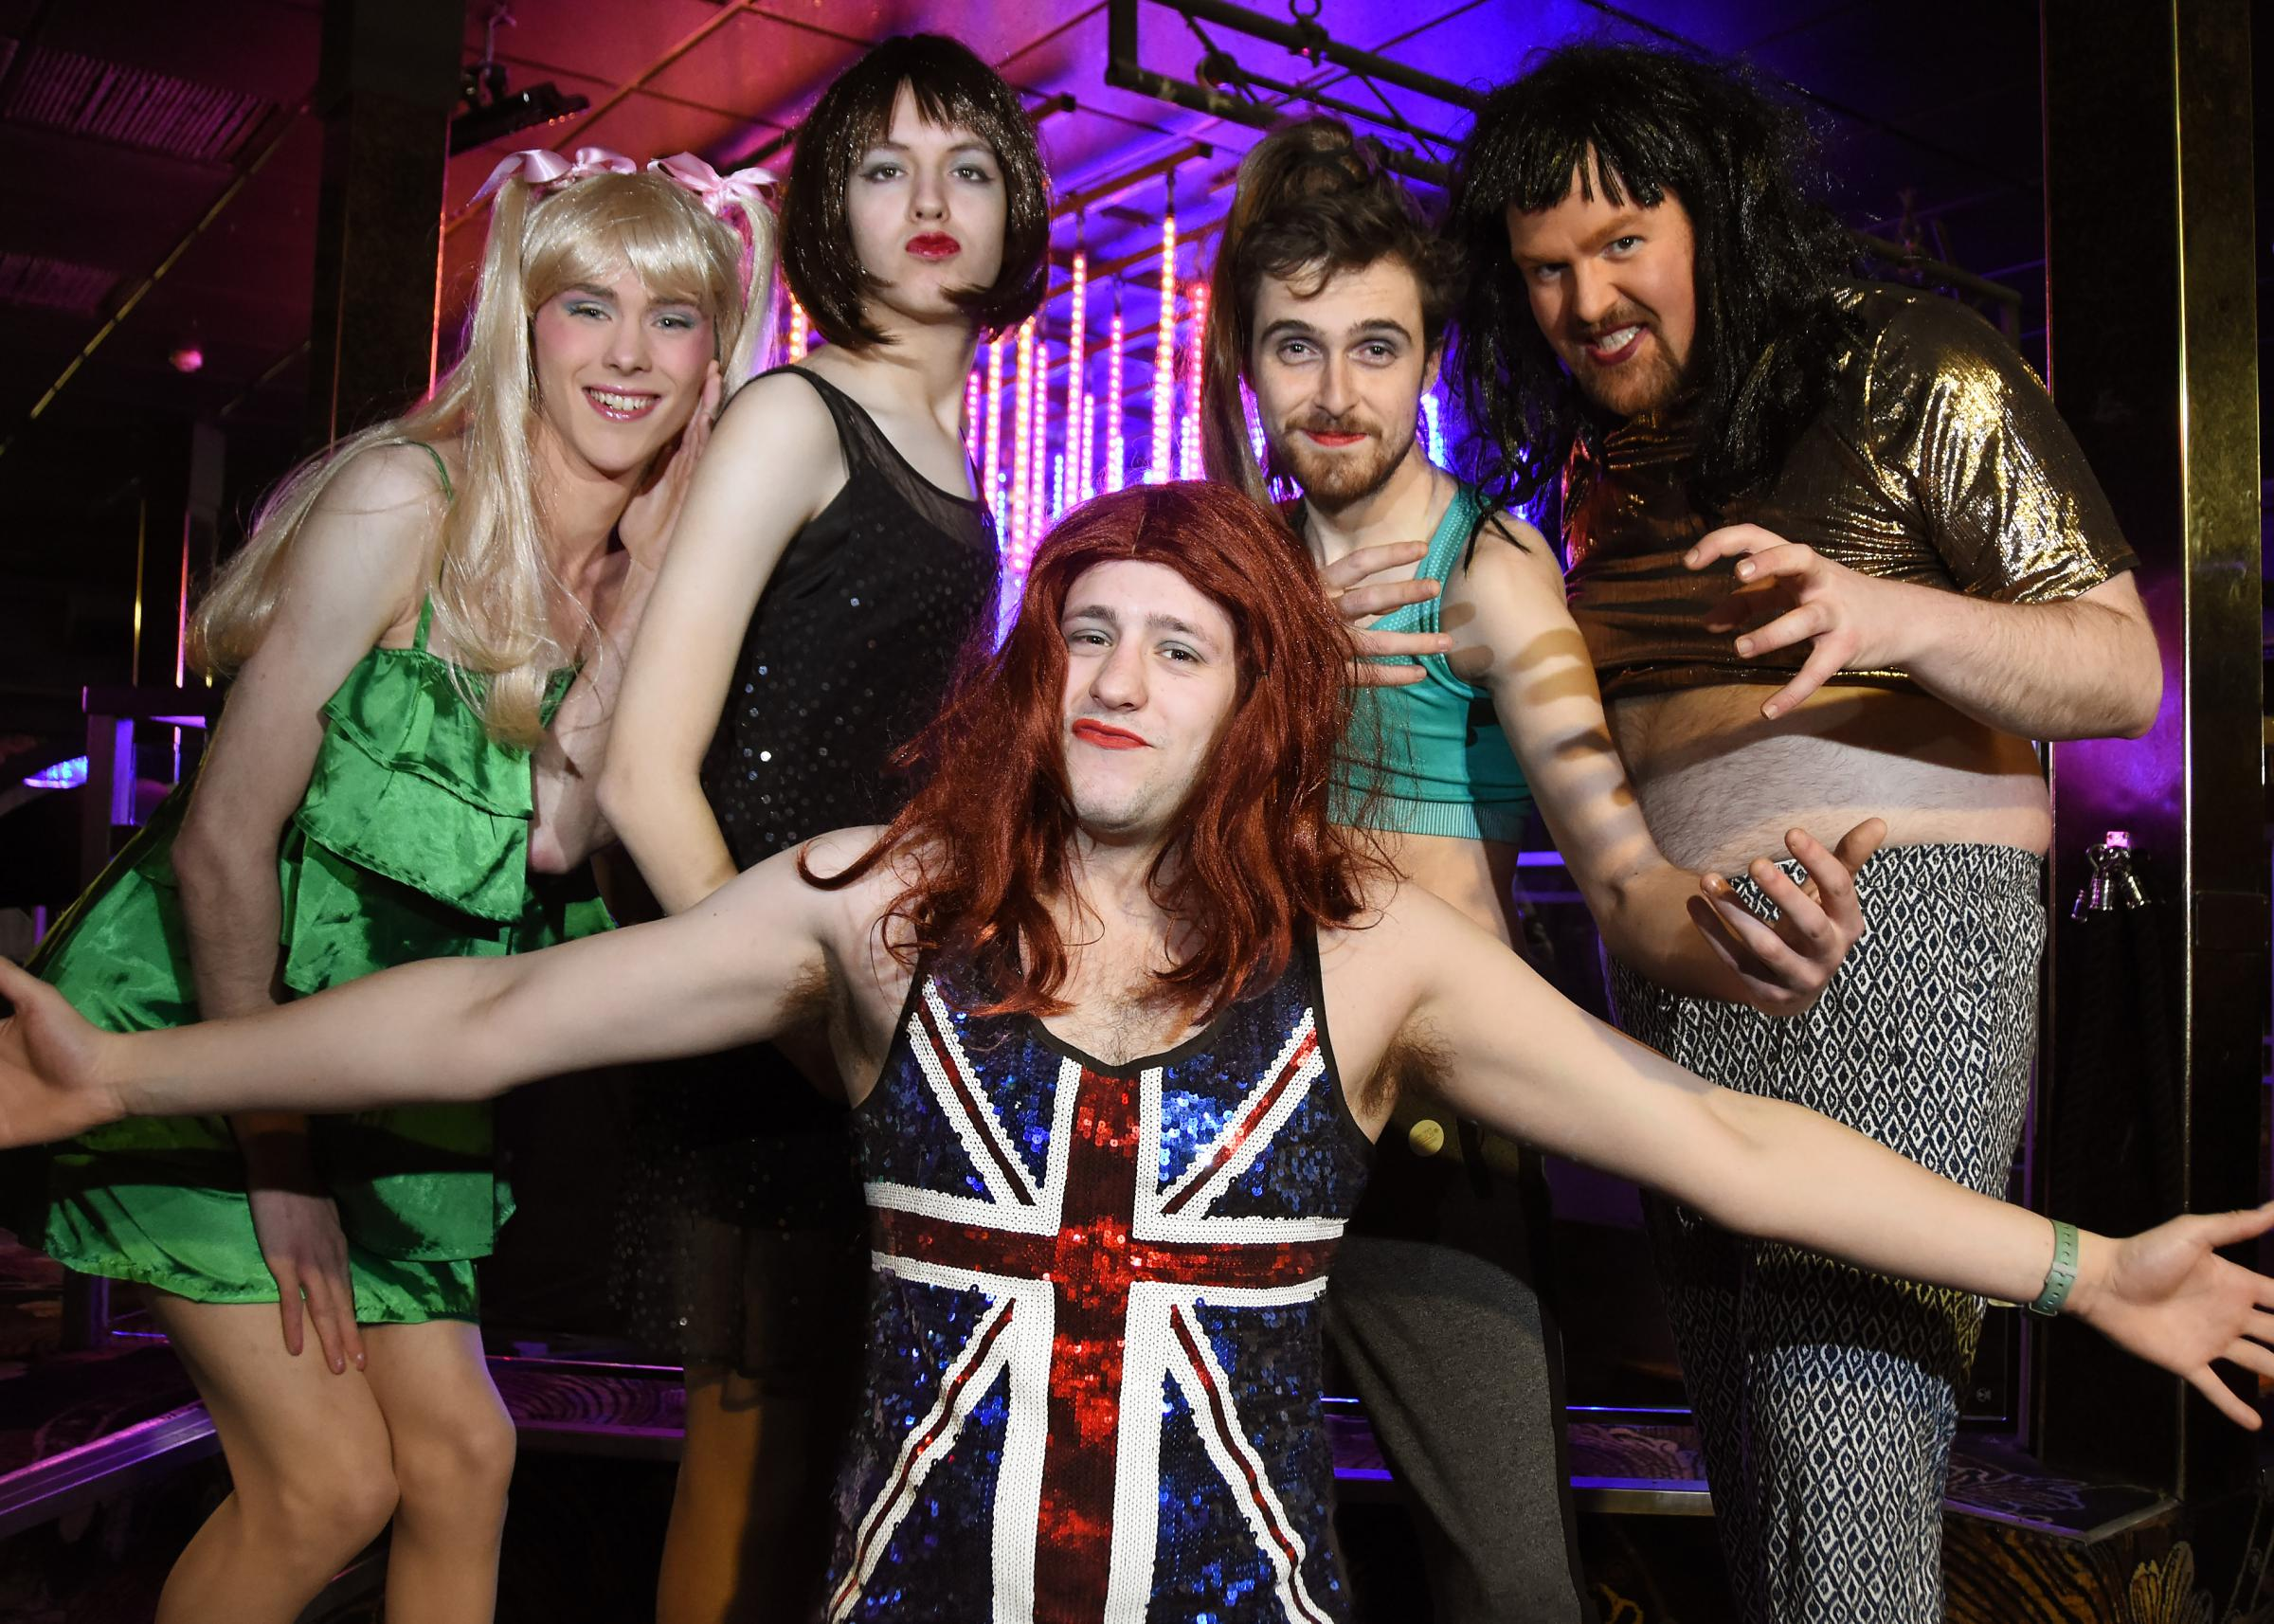 Looking forward to Wannabe - The Spice Girls Show at the Grand Opera House: David Harrison, dressed as Baby Spice; Alex Hill, as Posh; Sam Gray as Ginger; Luke Hutchinson as Sporty and David Rennie as Scary. Picture: The other David Harrison